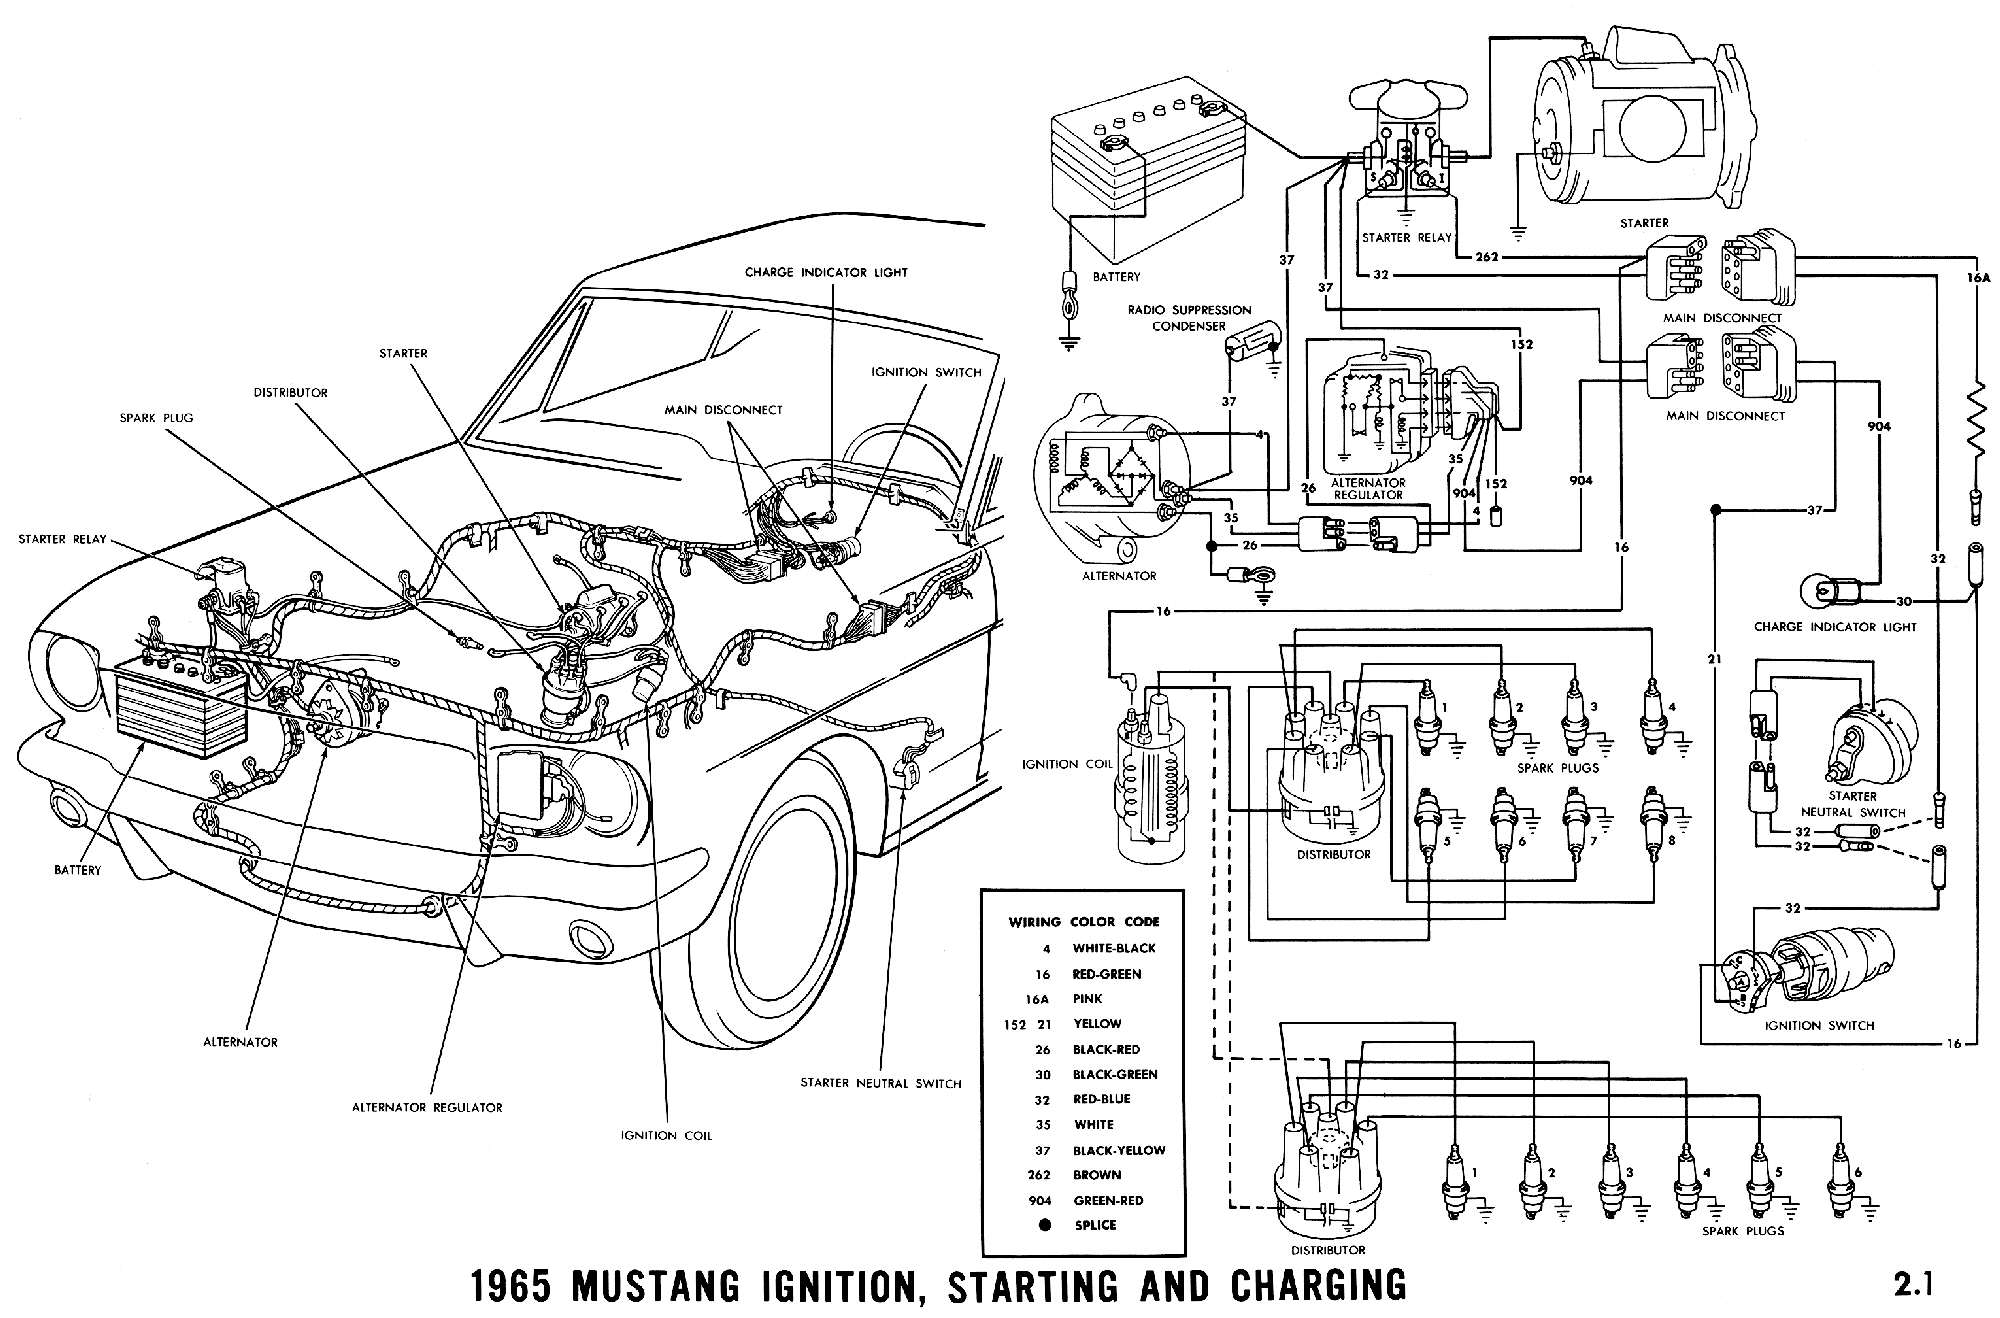 1965c 1965 mustang wiring diagrams average joe restoration mustang wiring harness at alyssarenee.co